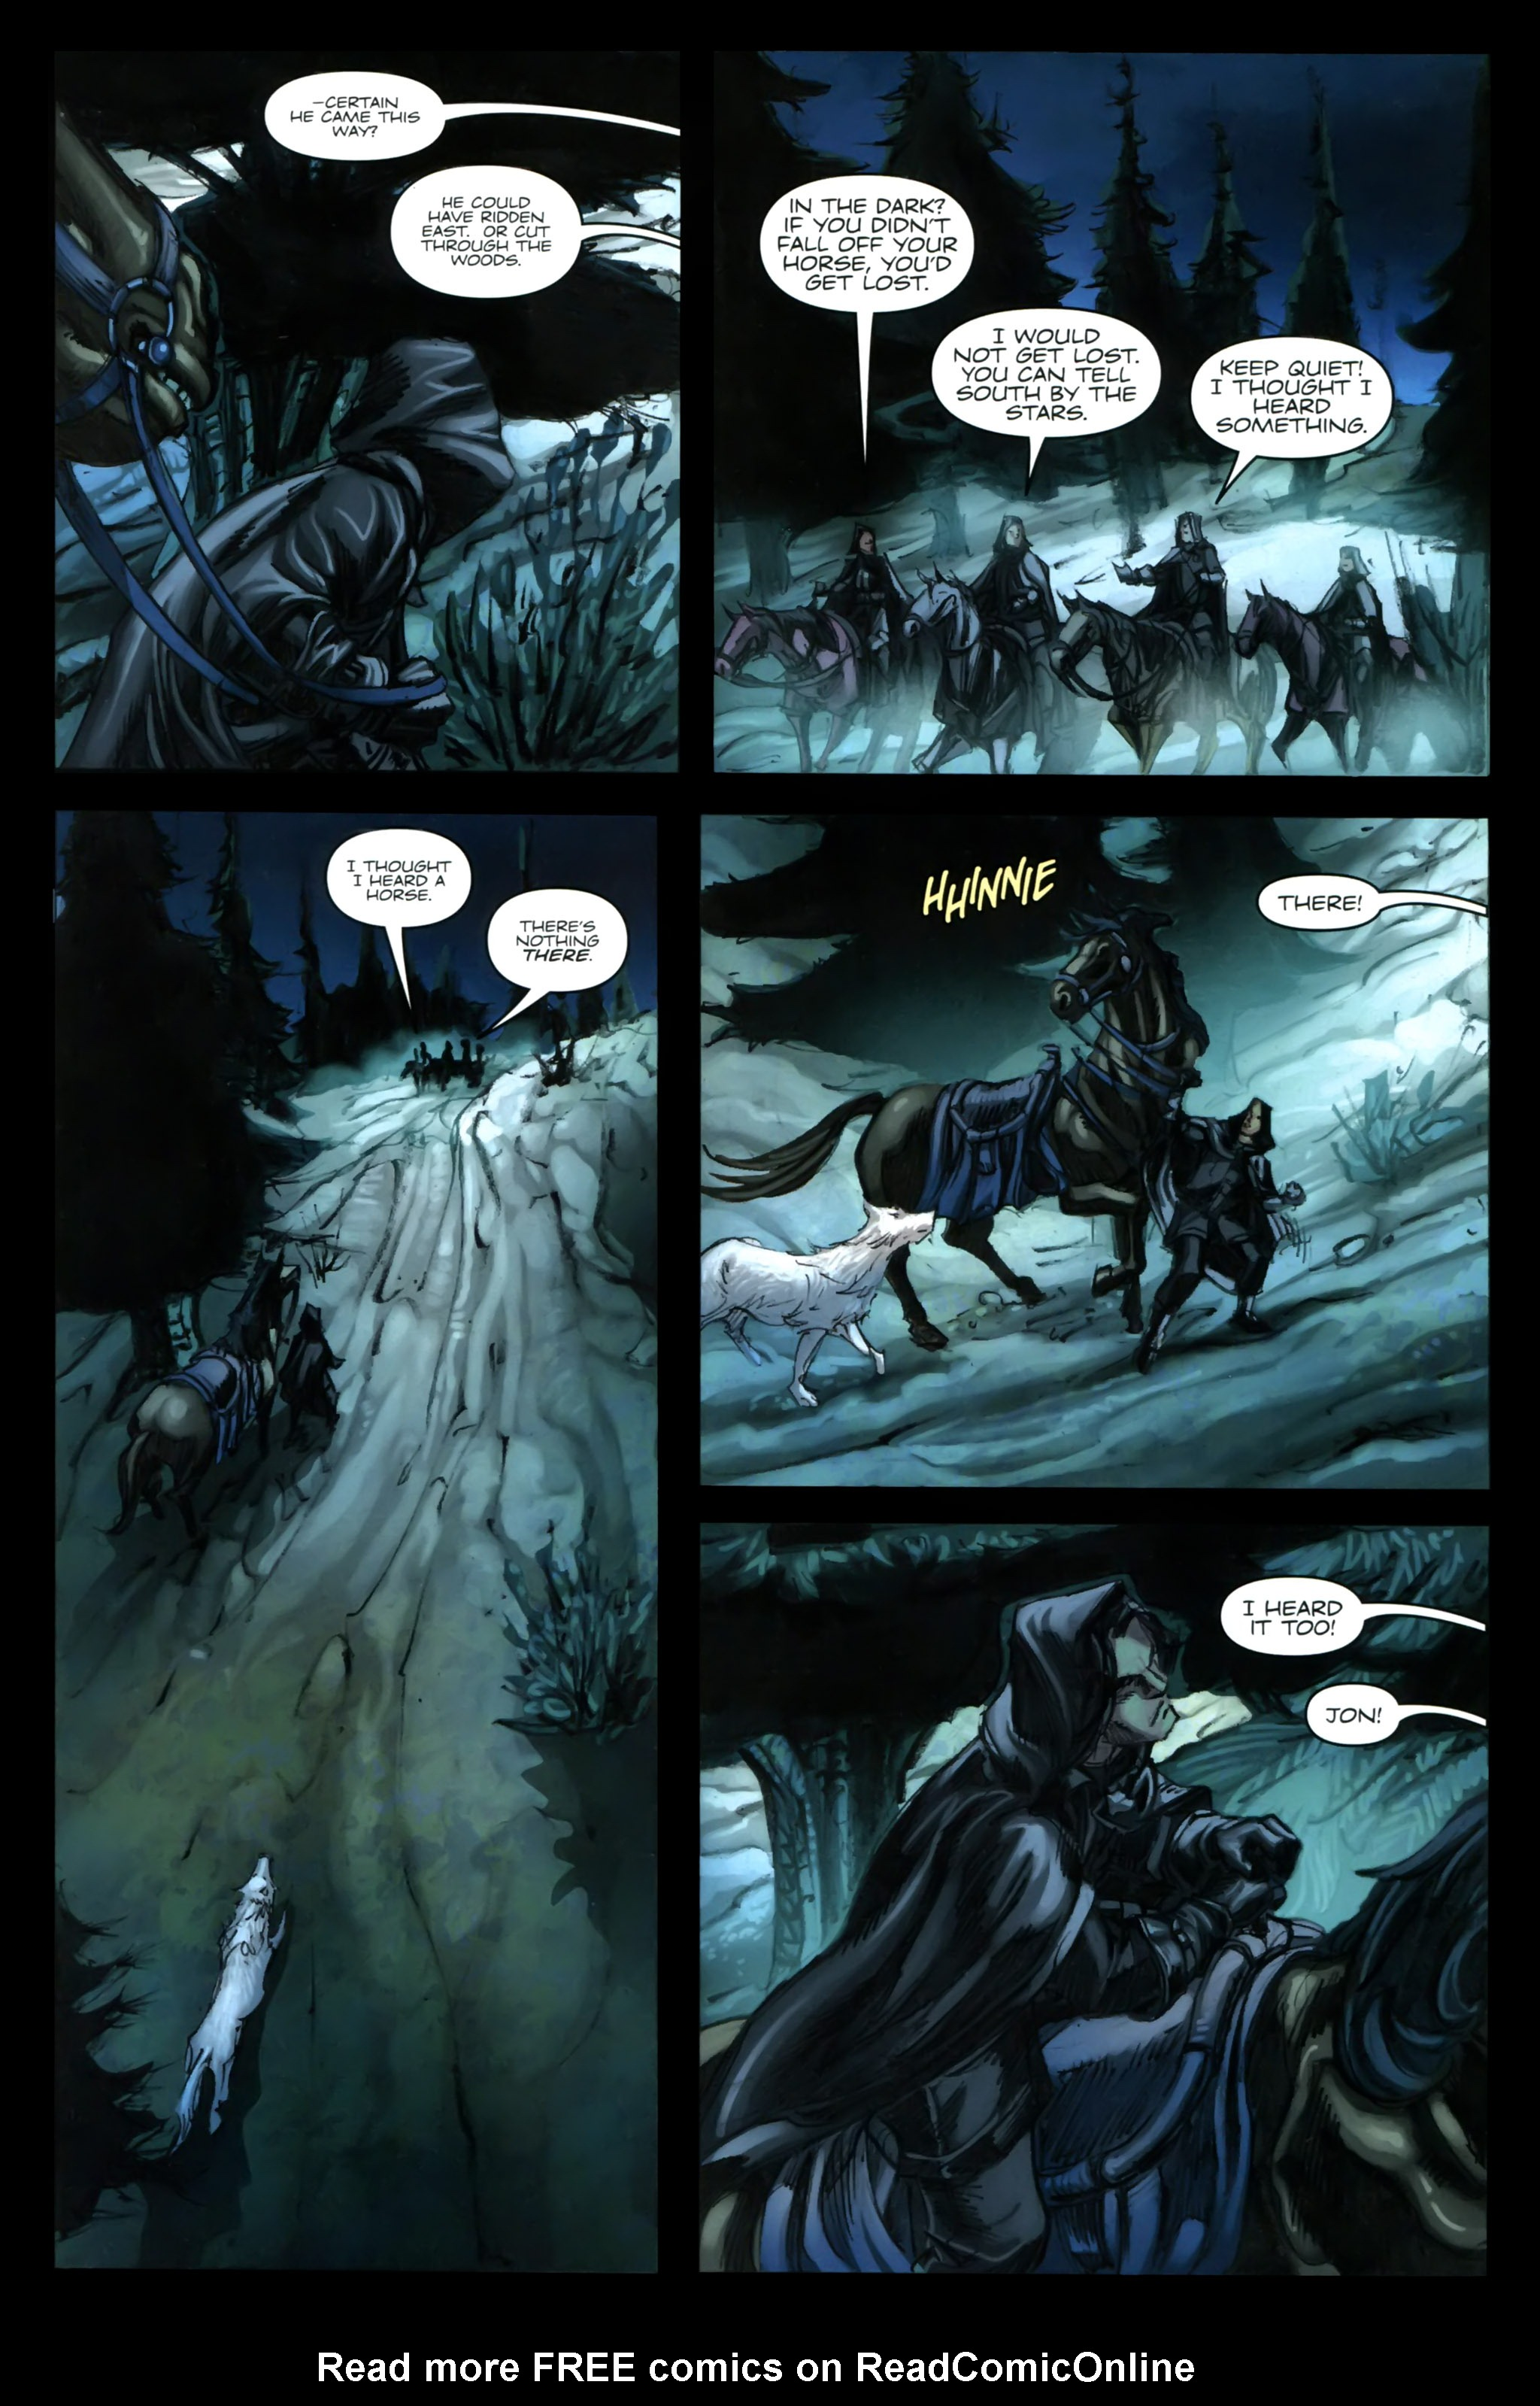 Read online A Game Of Thrones comic -  Issue #24 - 6